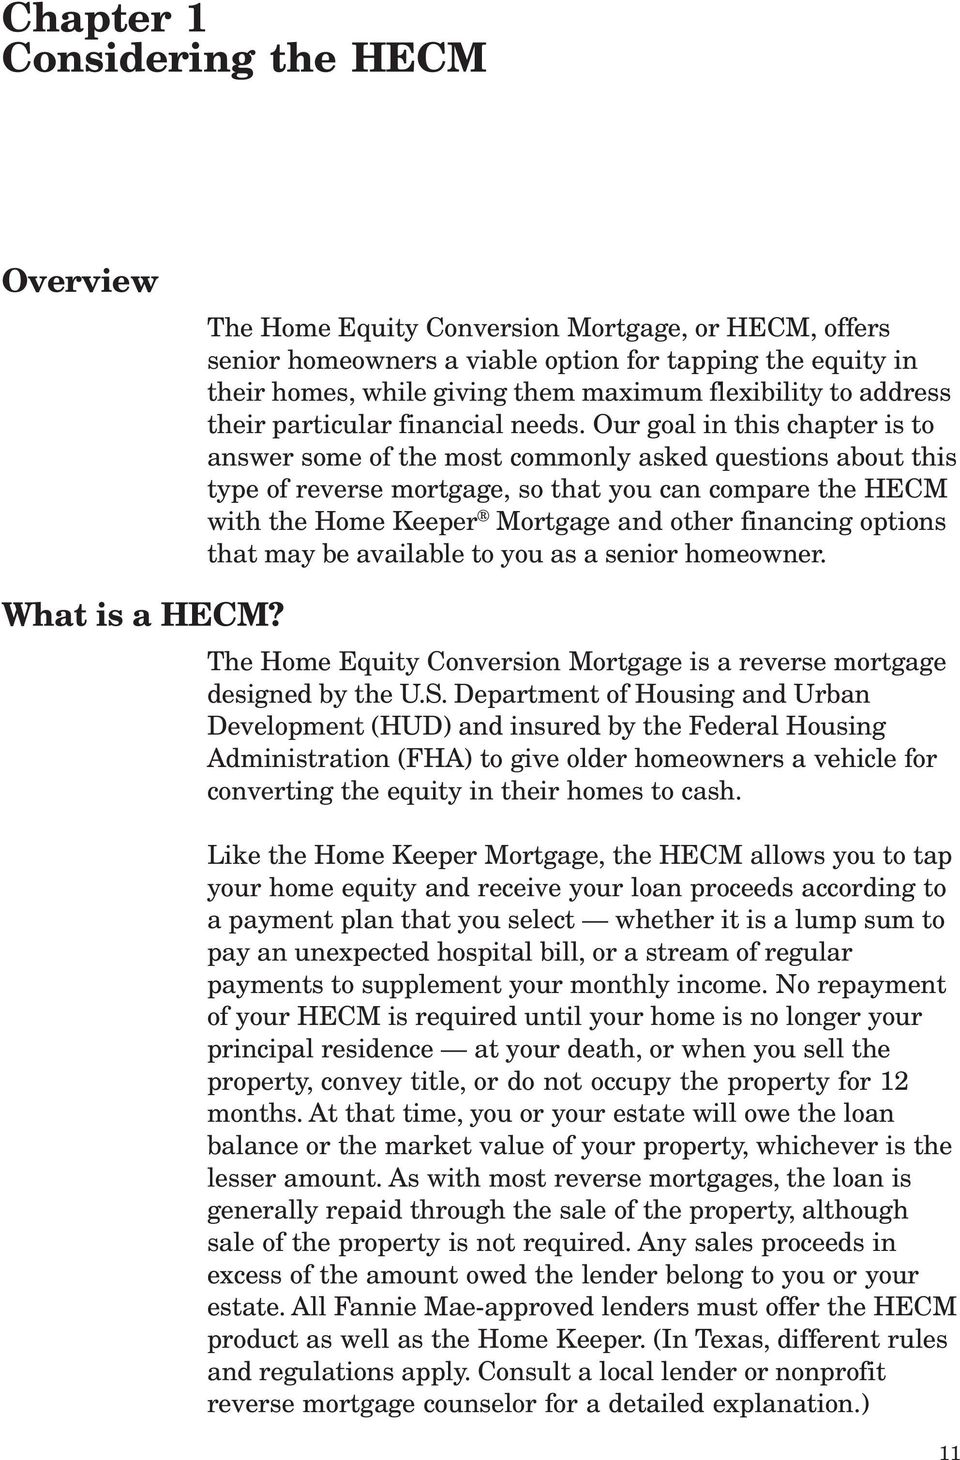 Our goal in this chapter is to answer some of the most commonly asked questions about this type of reverse mortgage, so that you can compare the HECM with the Home Keeper Mortgage and other financing